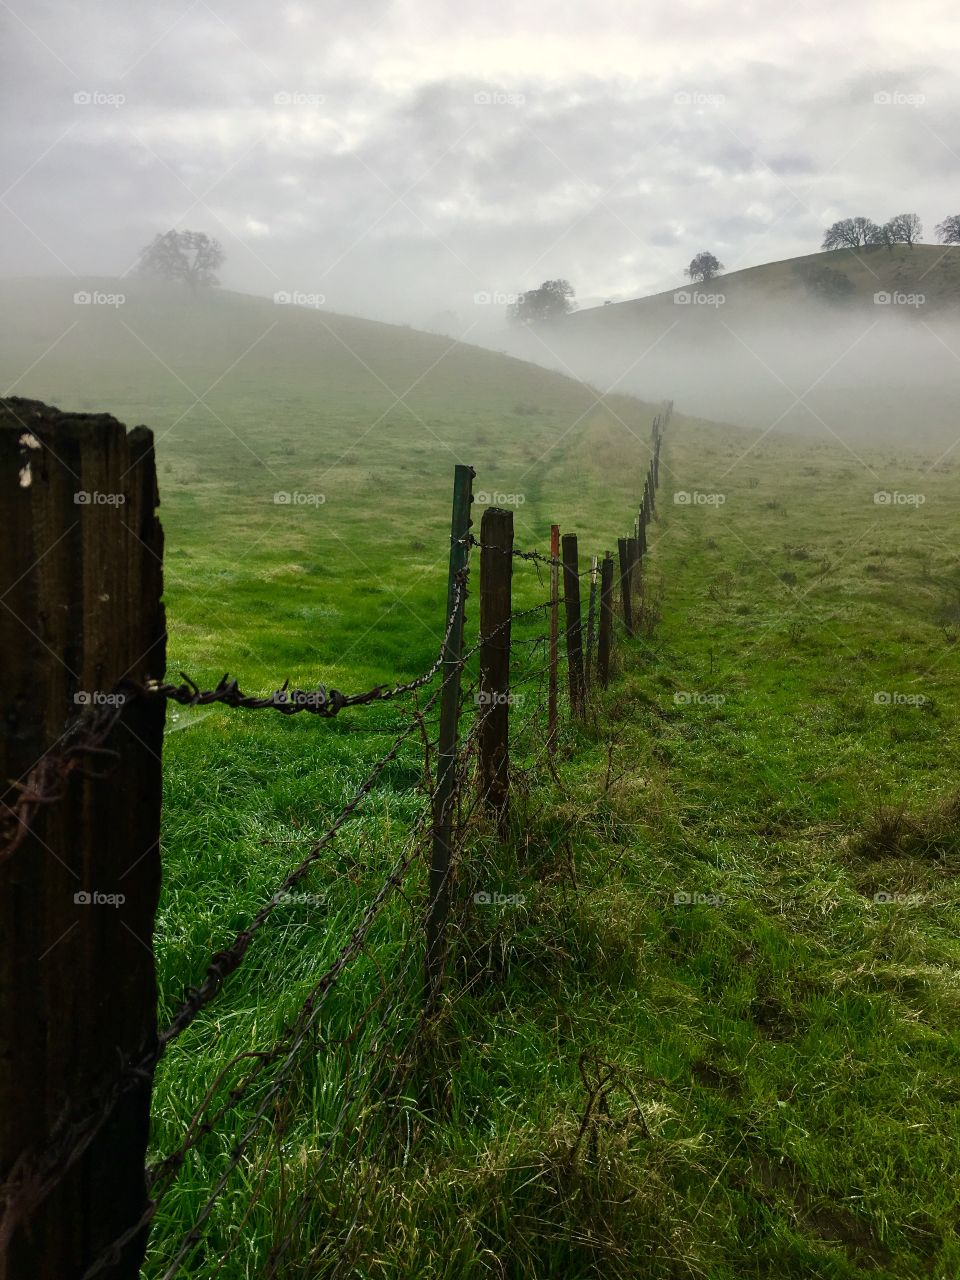 Foggy morning in the country.